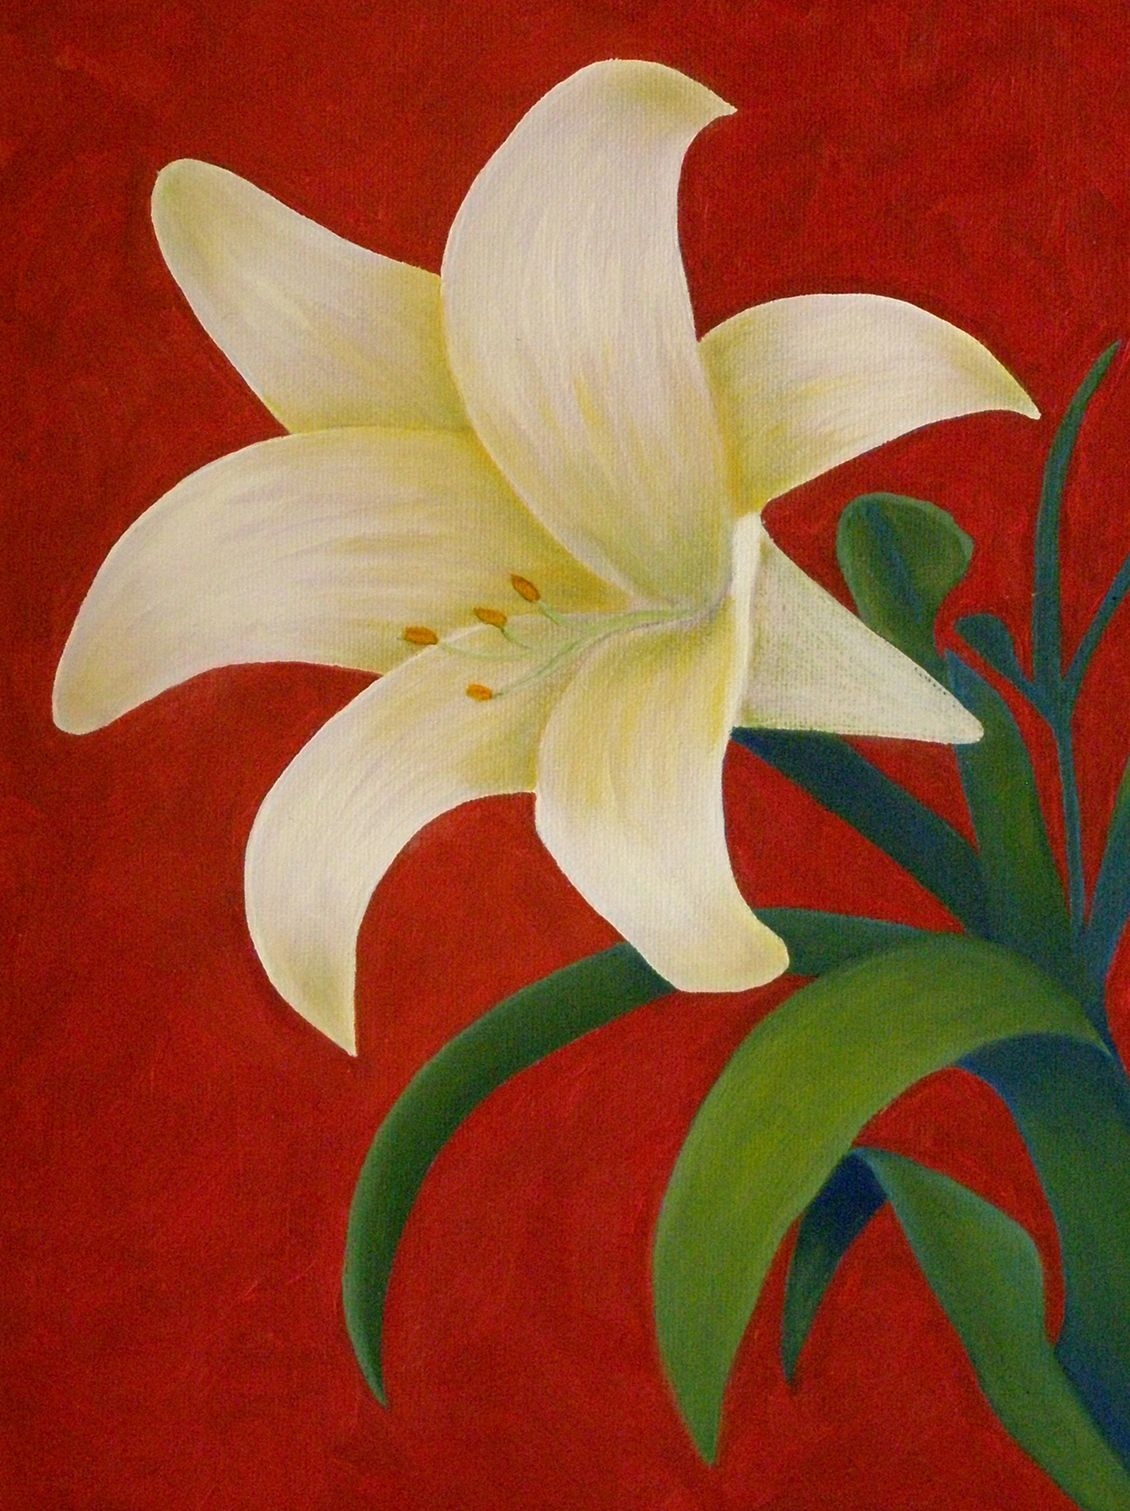 How to paint a lily step by step with photos ideas flowers how to paint a lily step by step with photos dhlflorist Choice Image